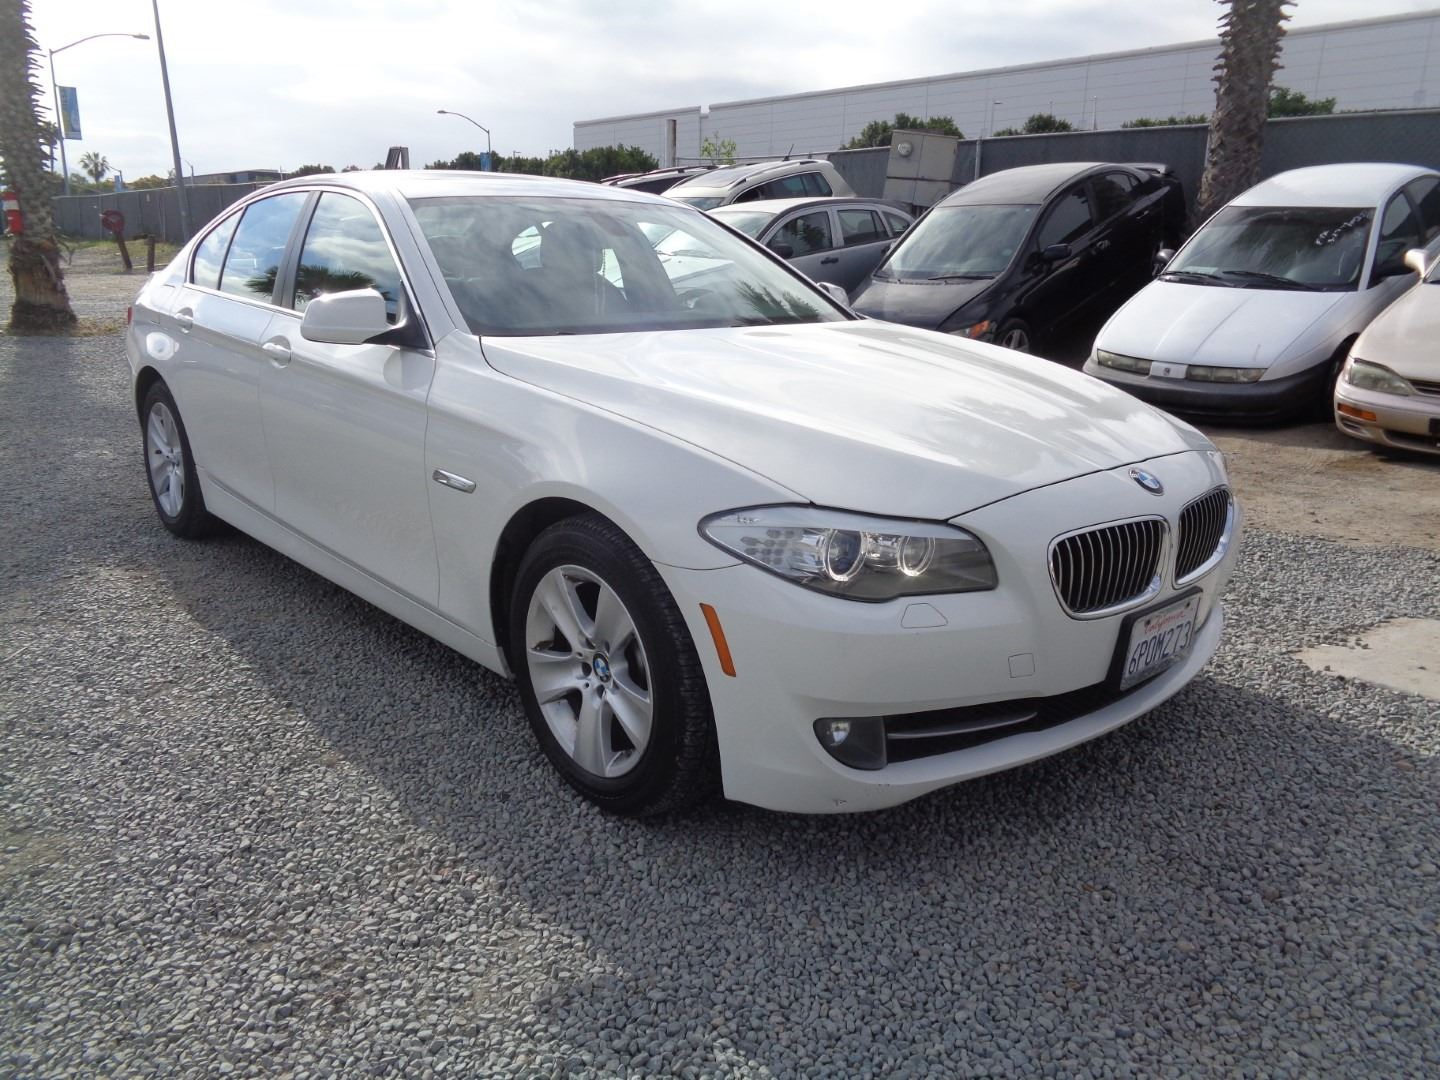 small resolution of image 1 bmw 528i 2011 t